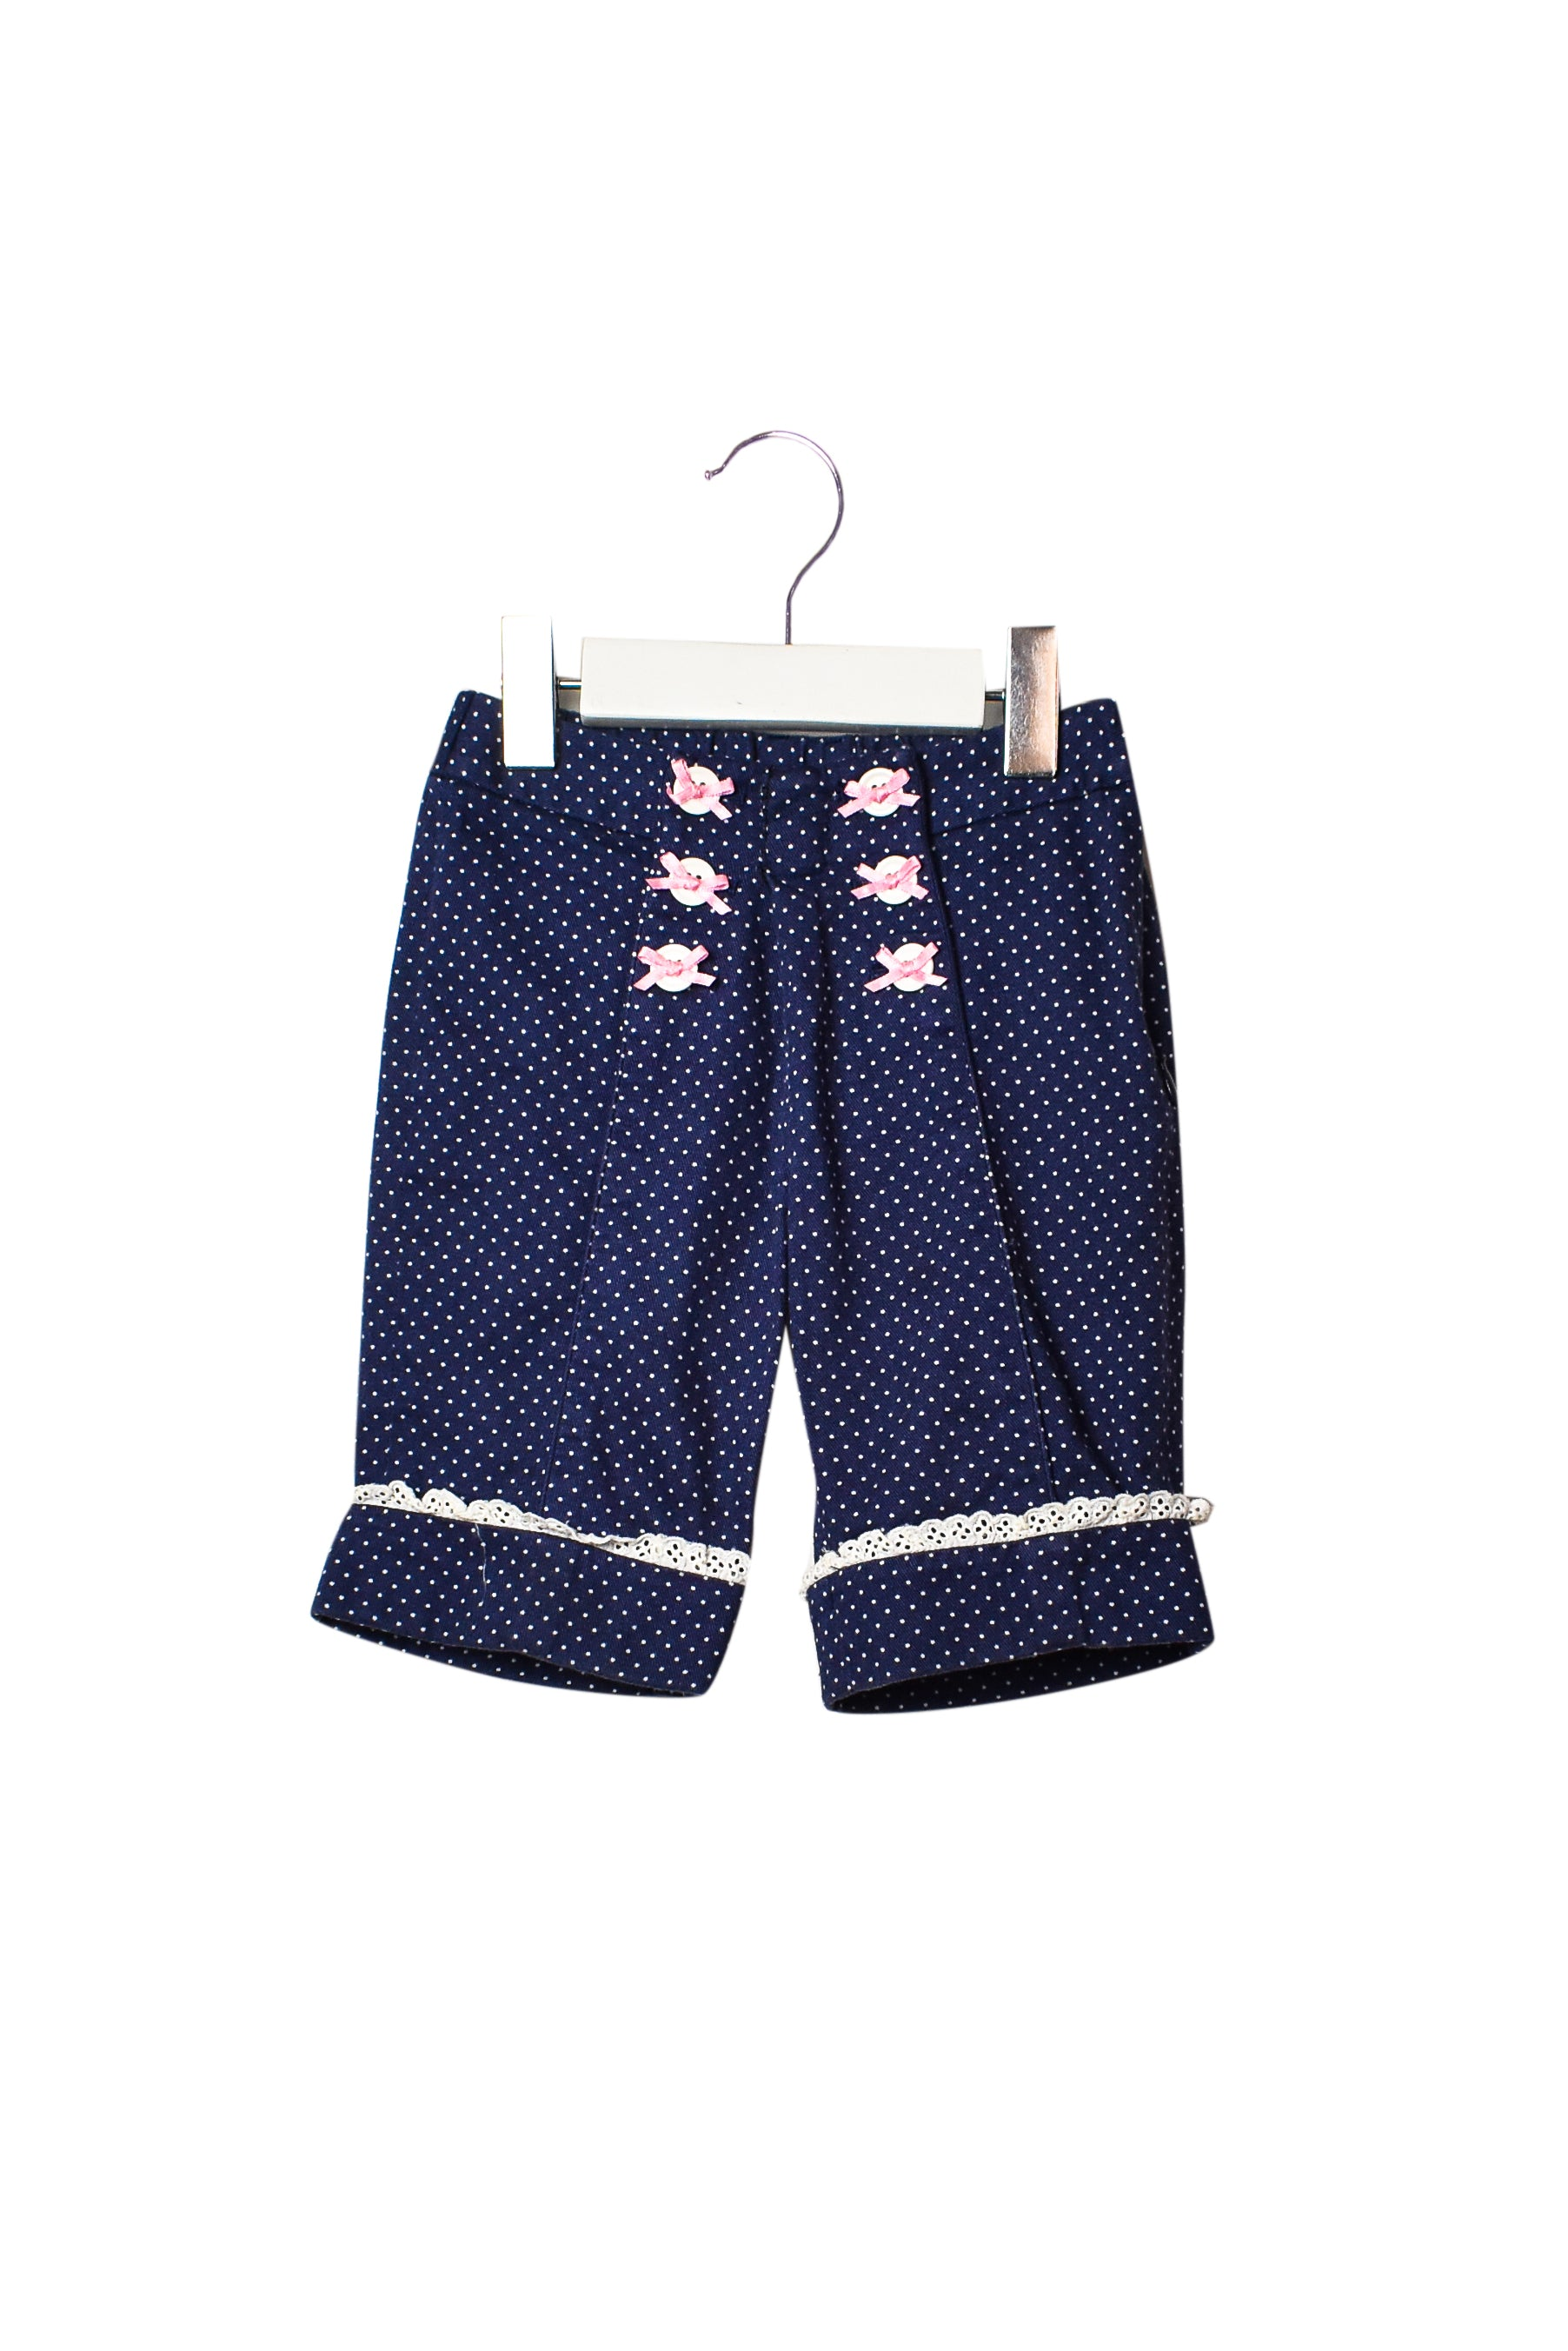 10007951 Nicholas & Bears Baby~ Pants 18M at Retykle